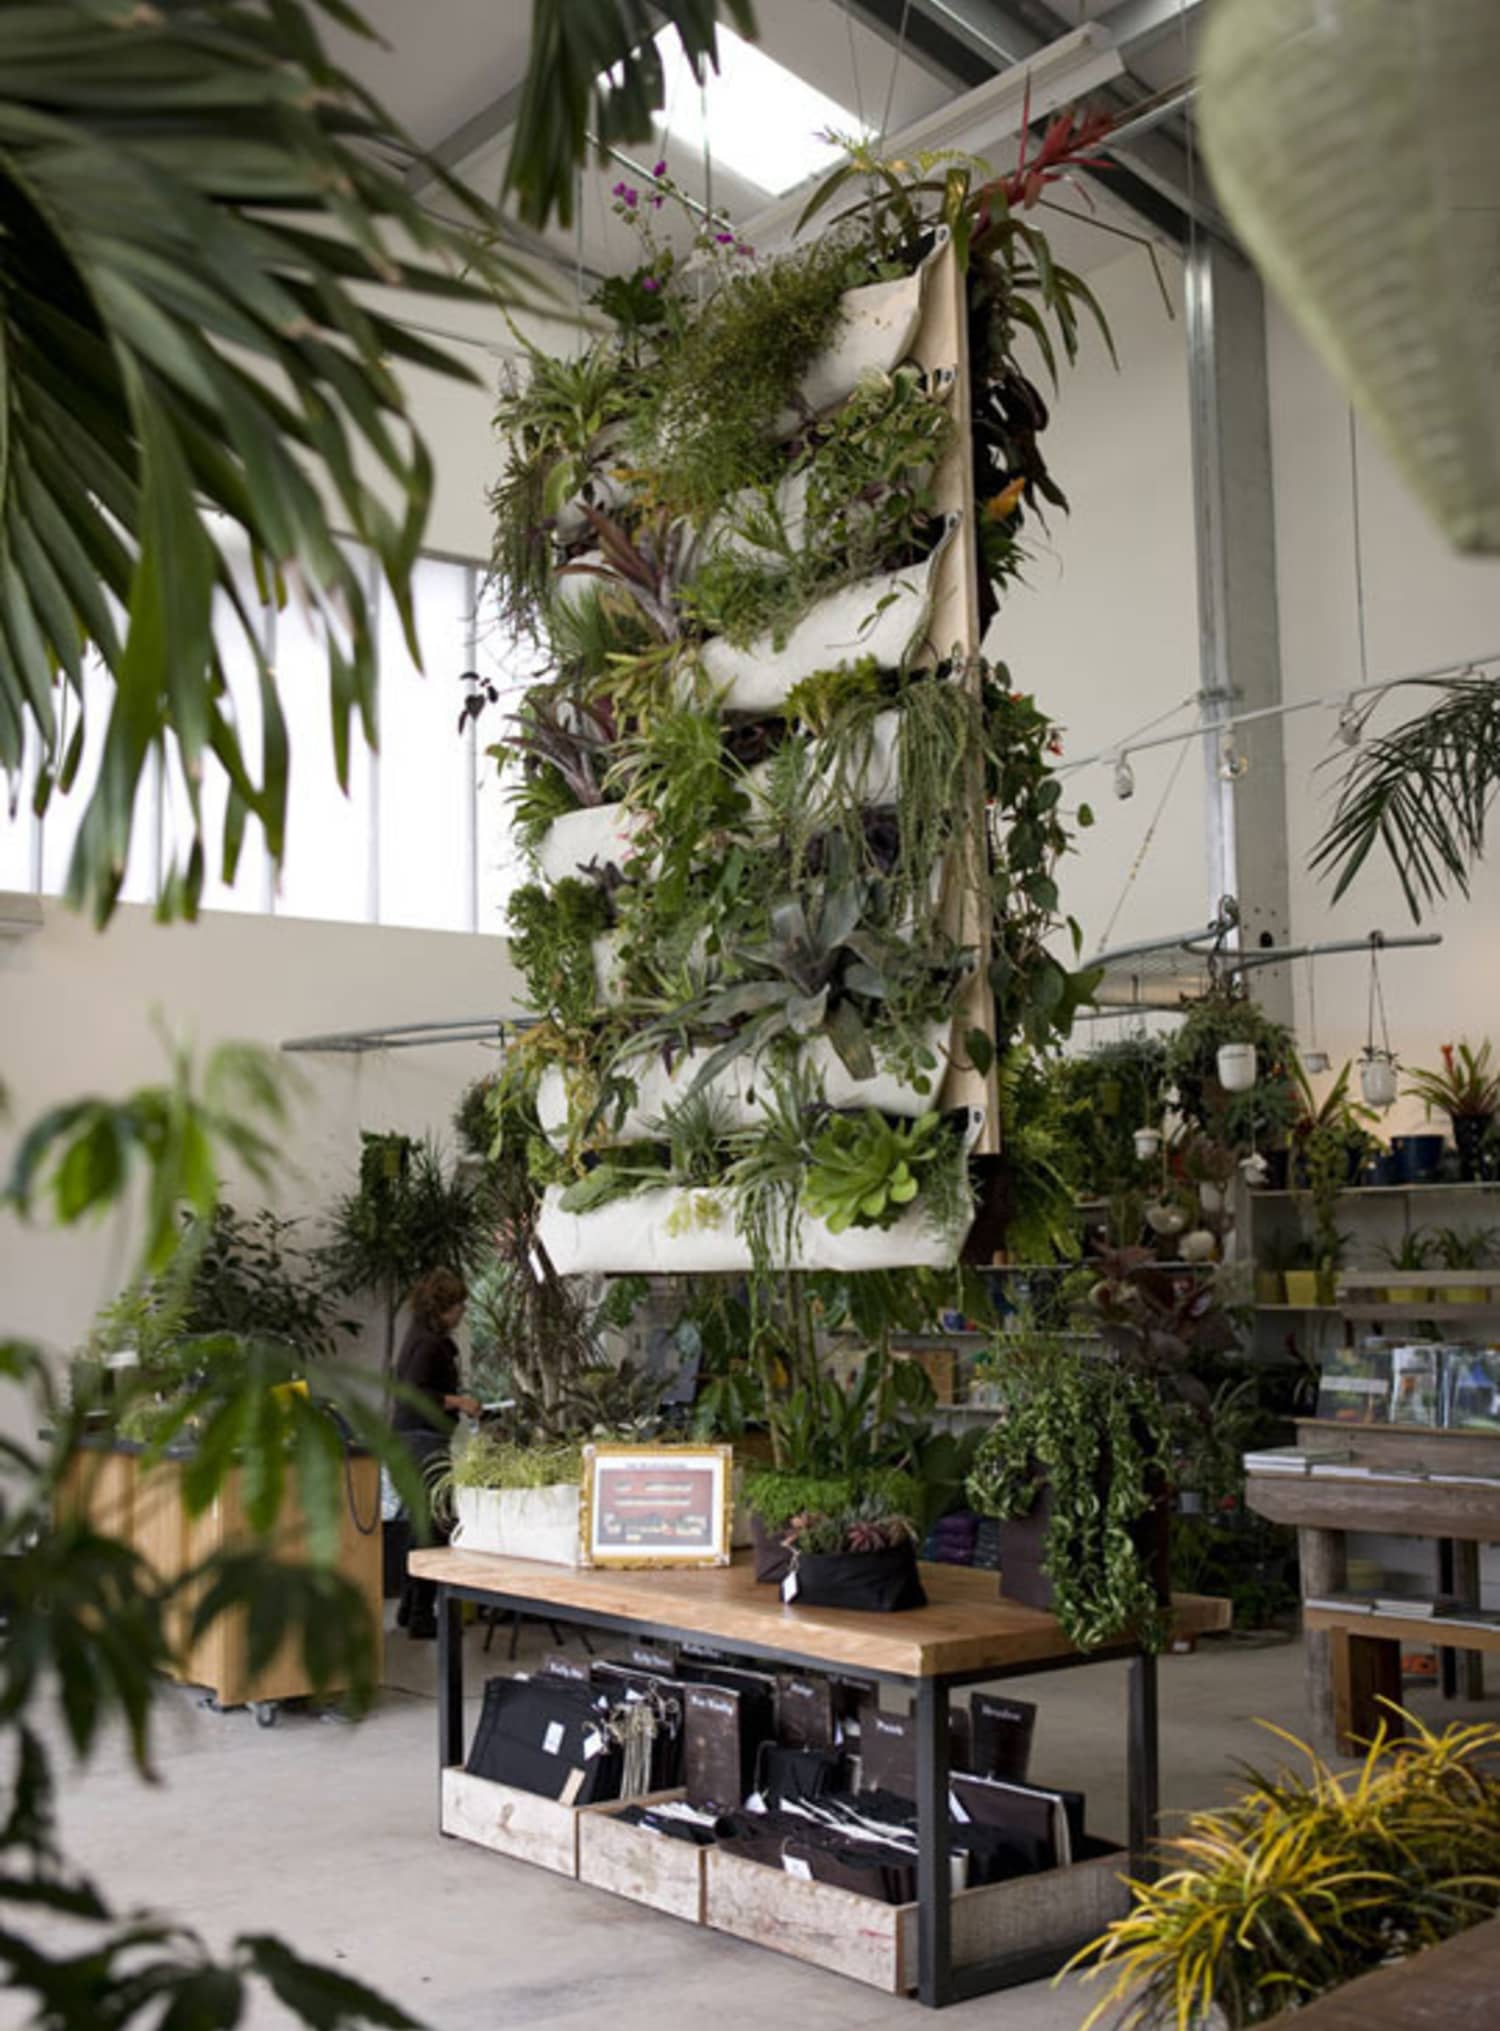 It's Easy Being Green: DIY Ways to Enjoy the Outdoors (Even in Winter)